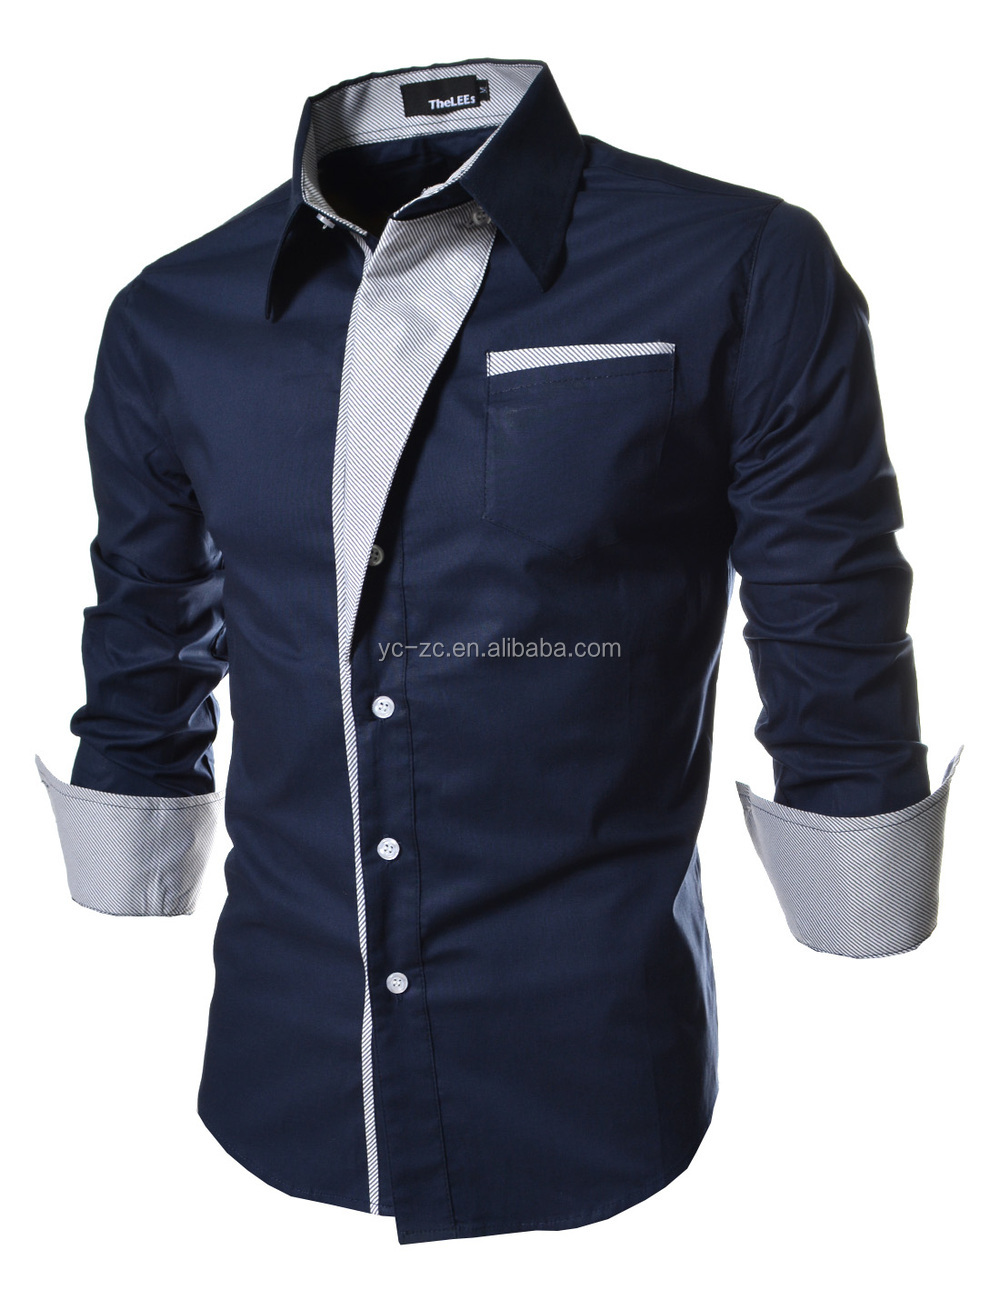 Fashionable Casual Shirts new arrivals for men at Macy's come in all styles and sizes. Shop latest fashion items for men - free shipping available! Macy's Presents: The Edit- A curated mix of fashion and inspiration Check It Out. Free Shipping with $99 purchase + Free Store Pickup. Contiguous US.